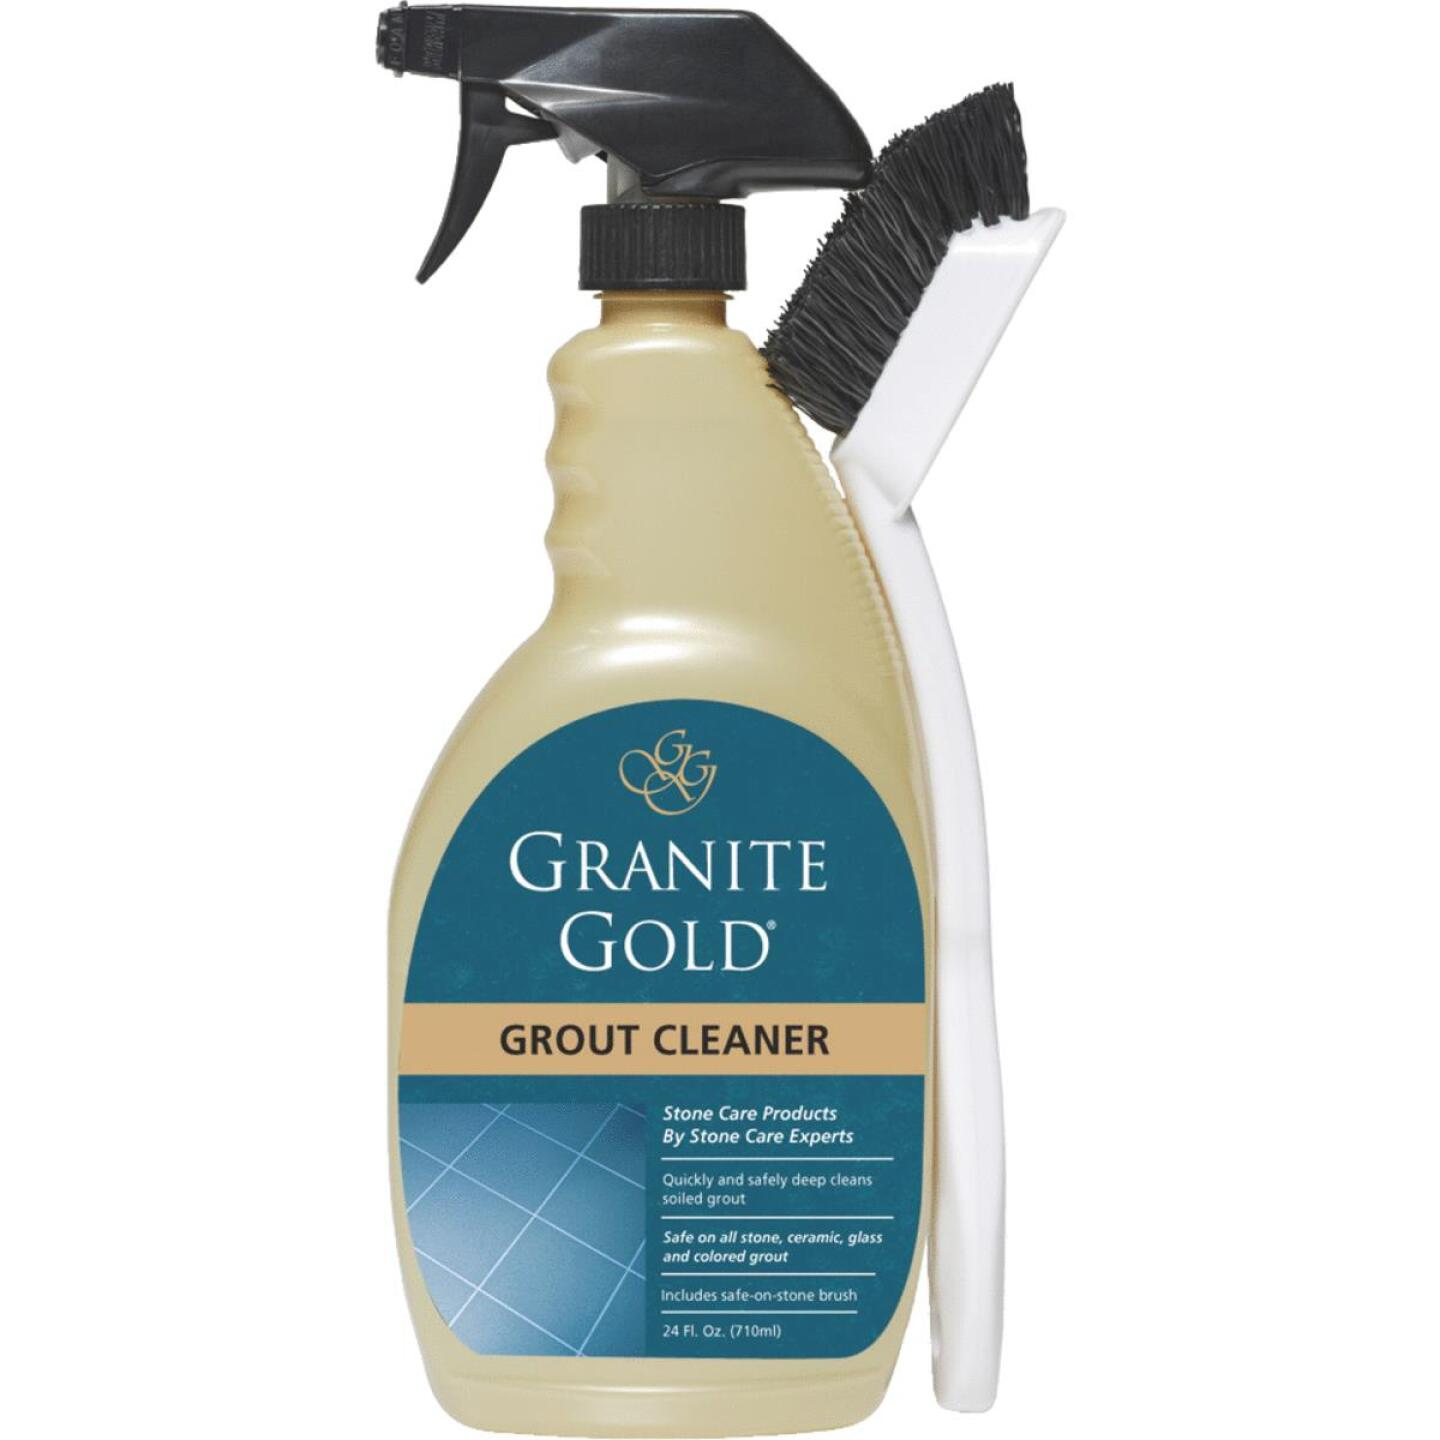 Granite Gold 24 Oz. Grout Cleaner Image 1